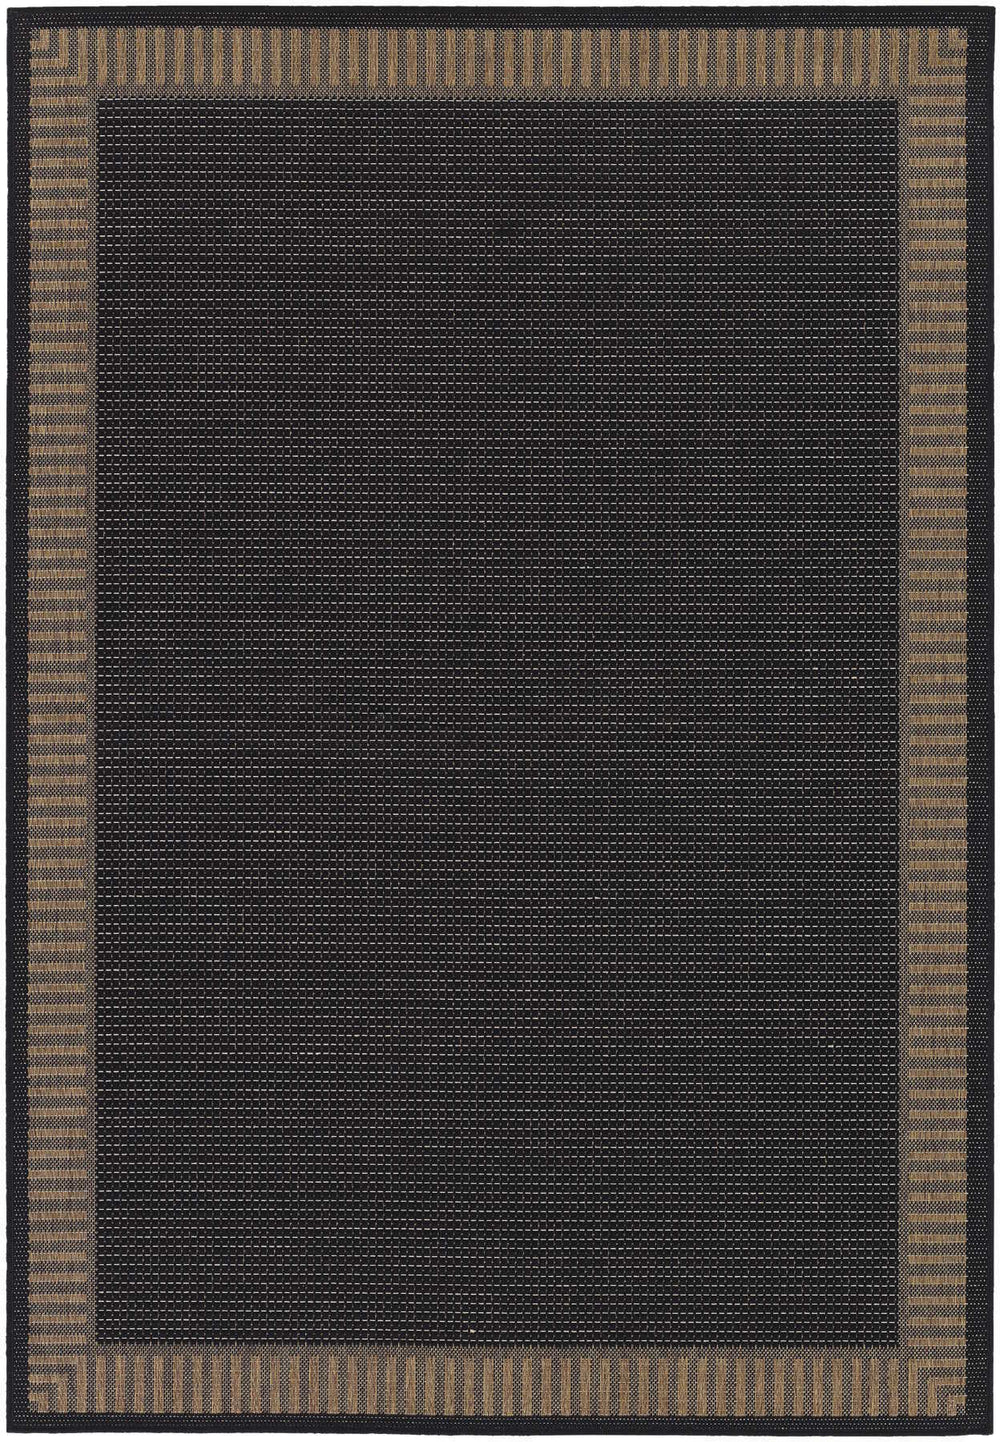 Couristan Recife Wicker Stitch Area Rug